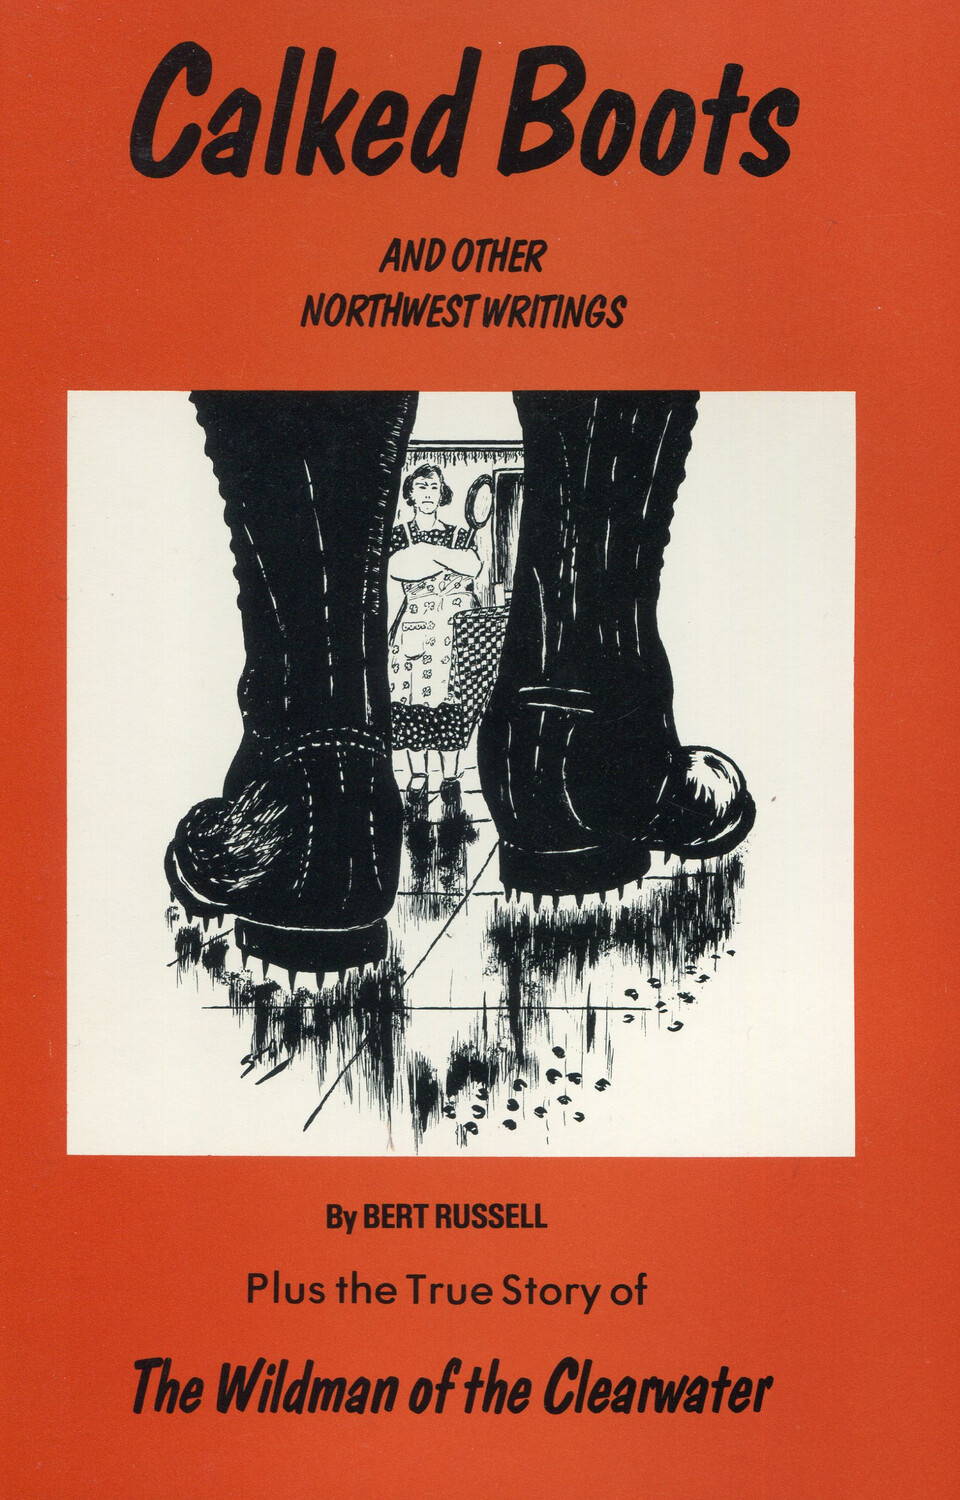 Calked Boots and Other Northwest Writings